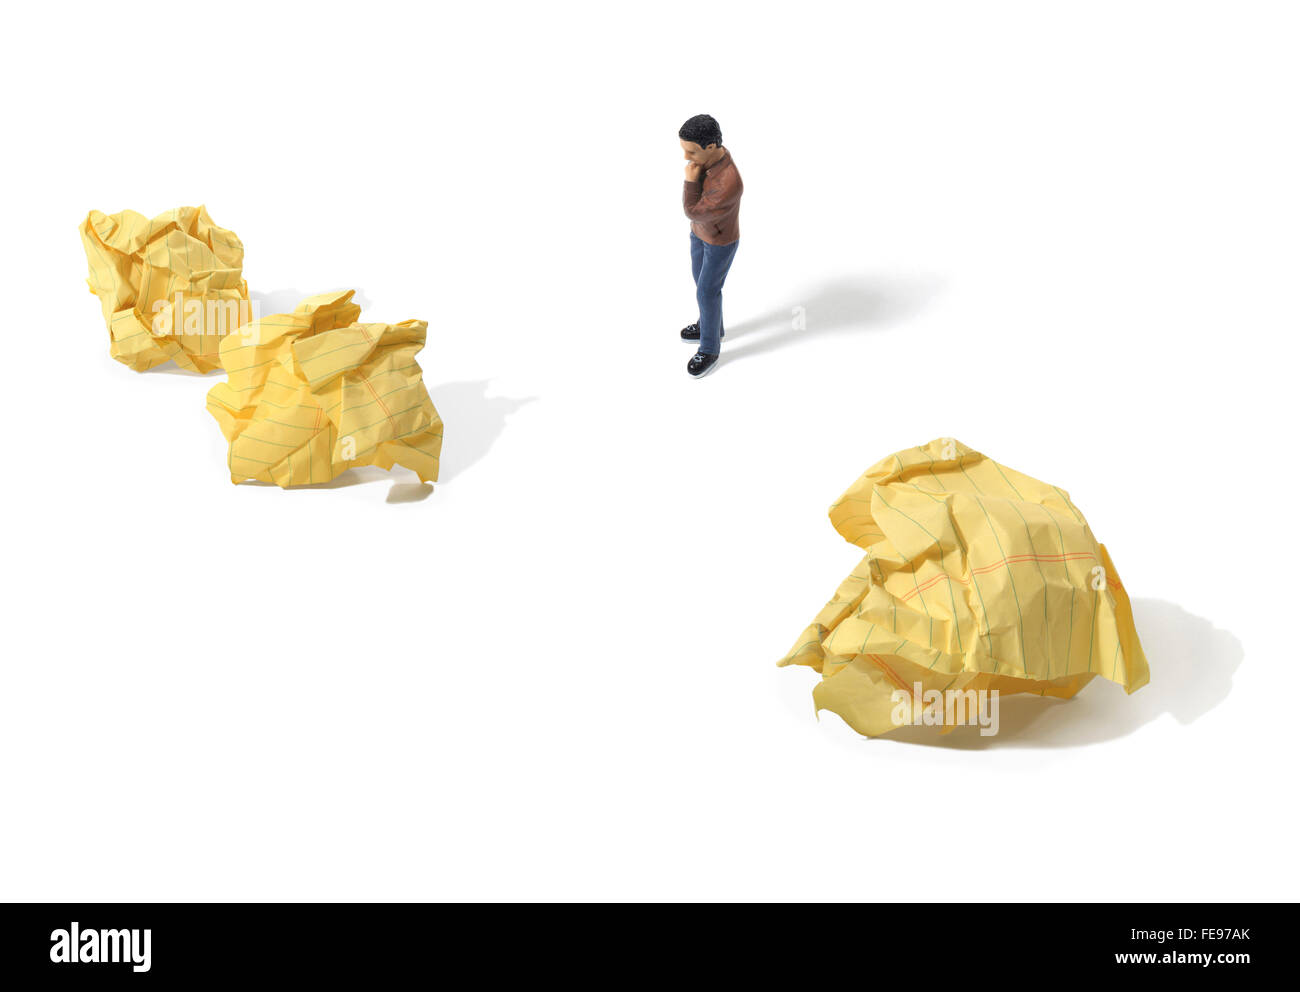 Figure Looking at Crumpled Paper Wads on a White Background - Stock Image